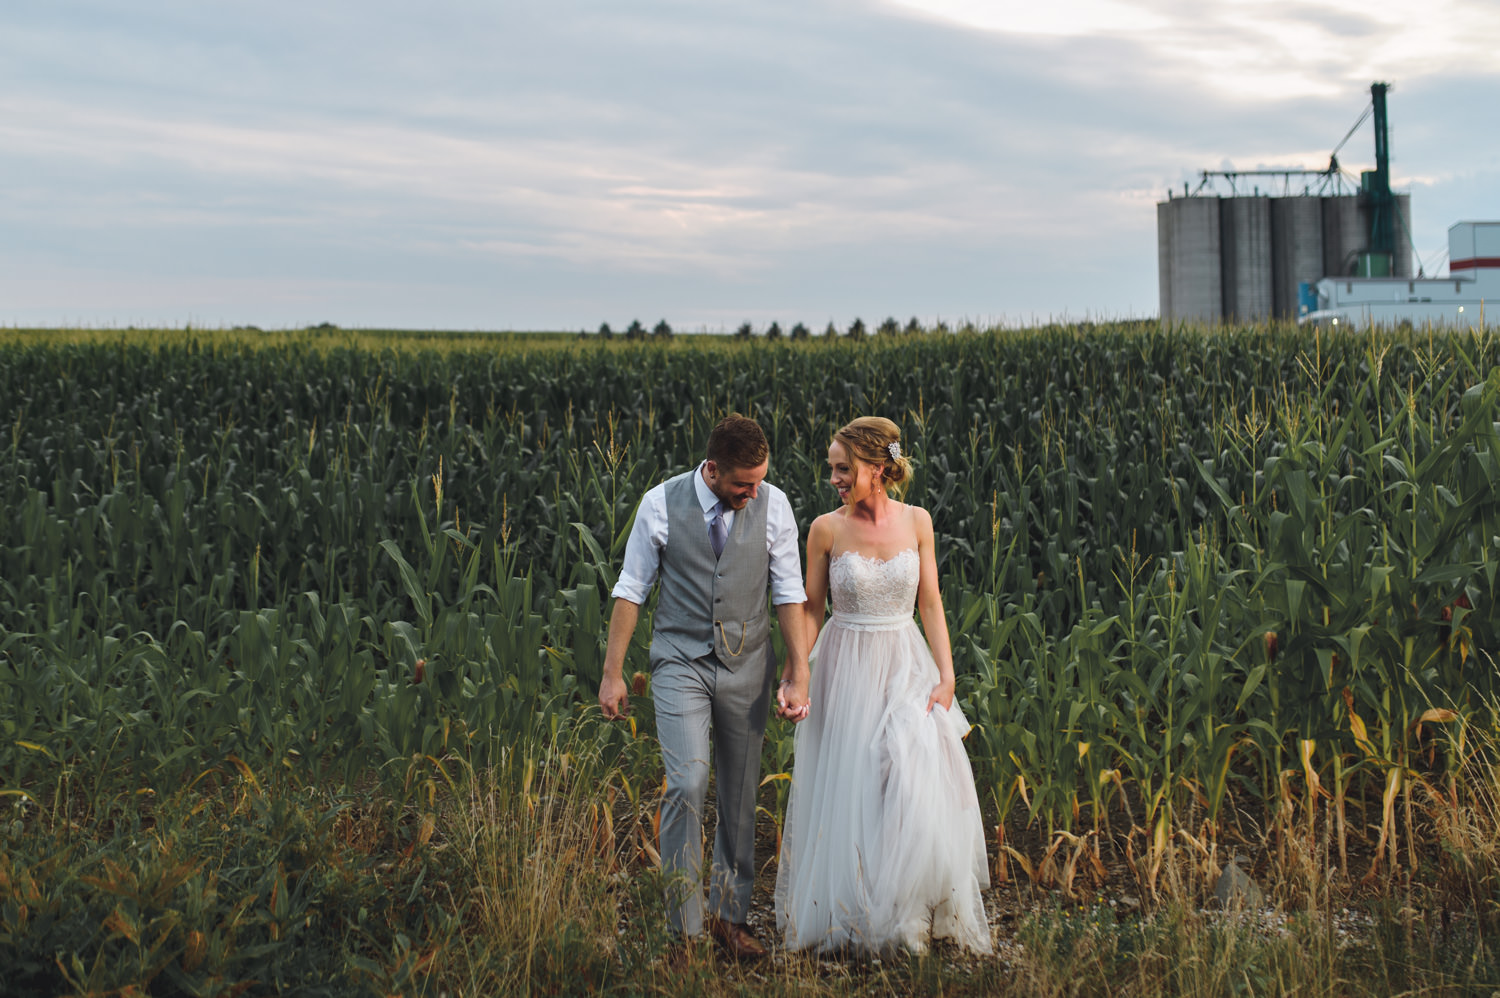 Elmhurst Inn Wedding Photo at the corn field